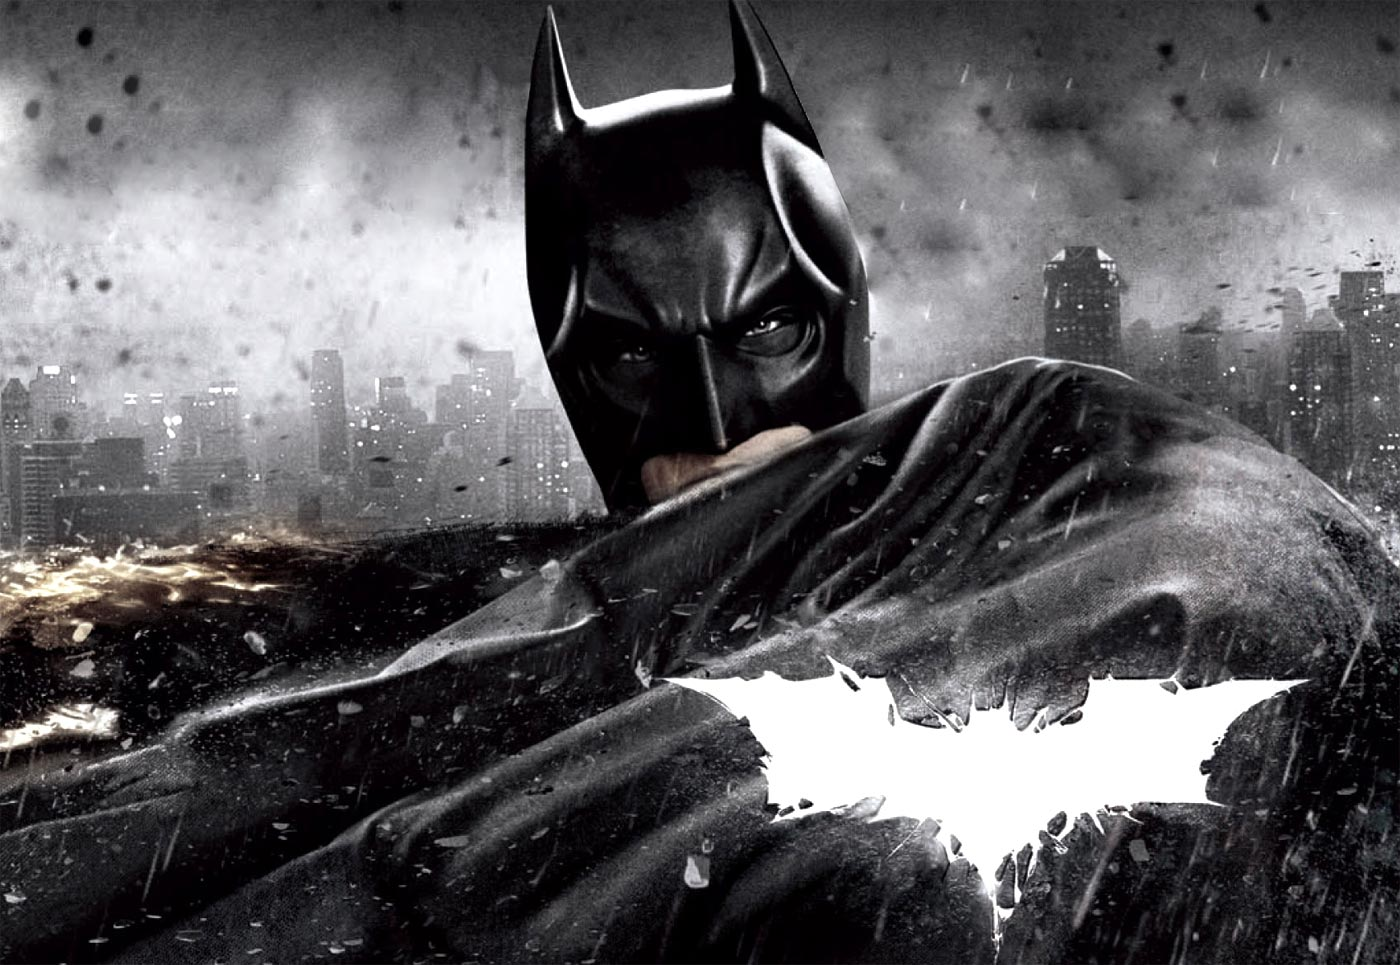 the dark knight rises a review The dark knight rises tells blake's story as much as it does bruce wayne's, and while to say much more would spoil the fun, gordon-levitt's character arc is perhaps the juiciest and most.